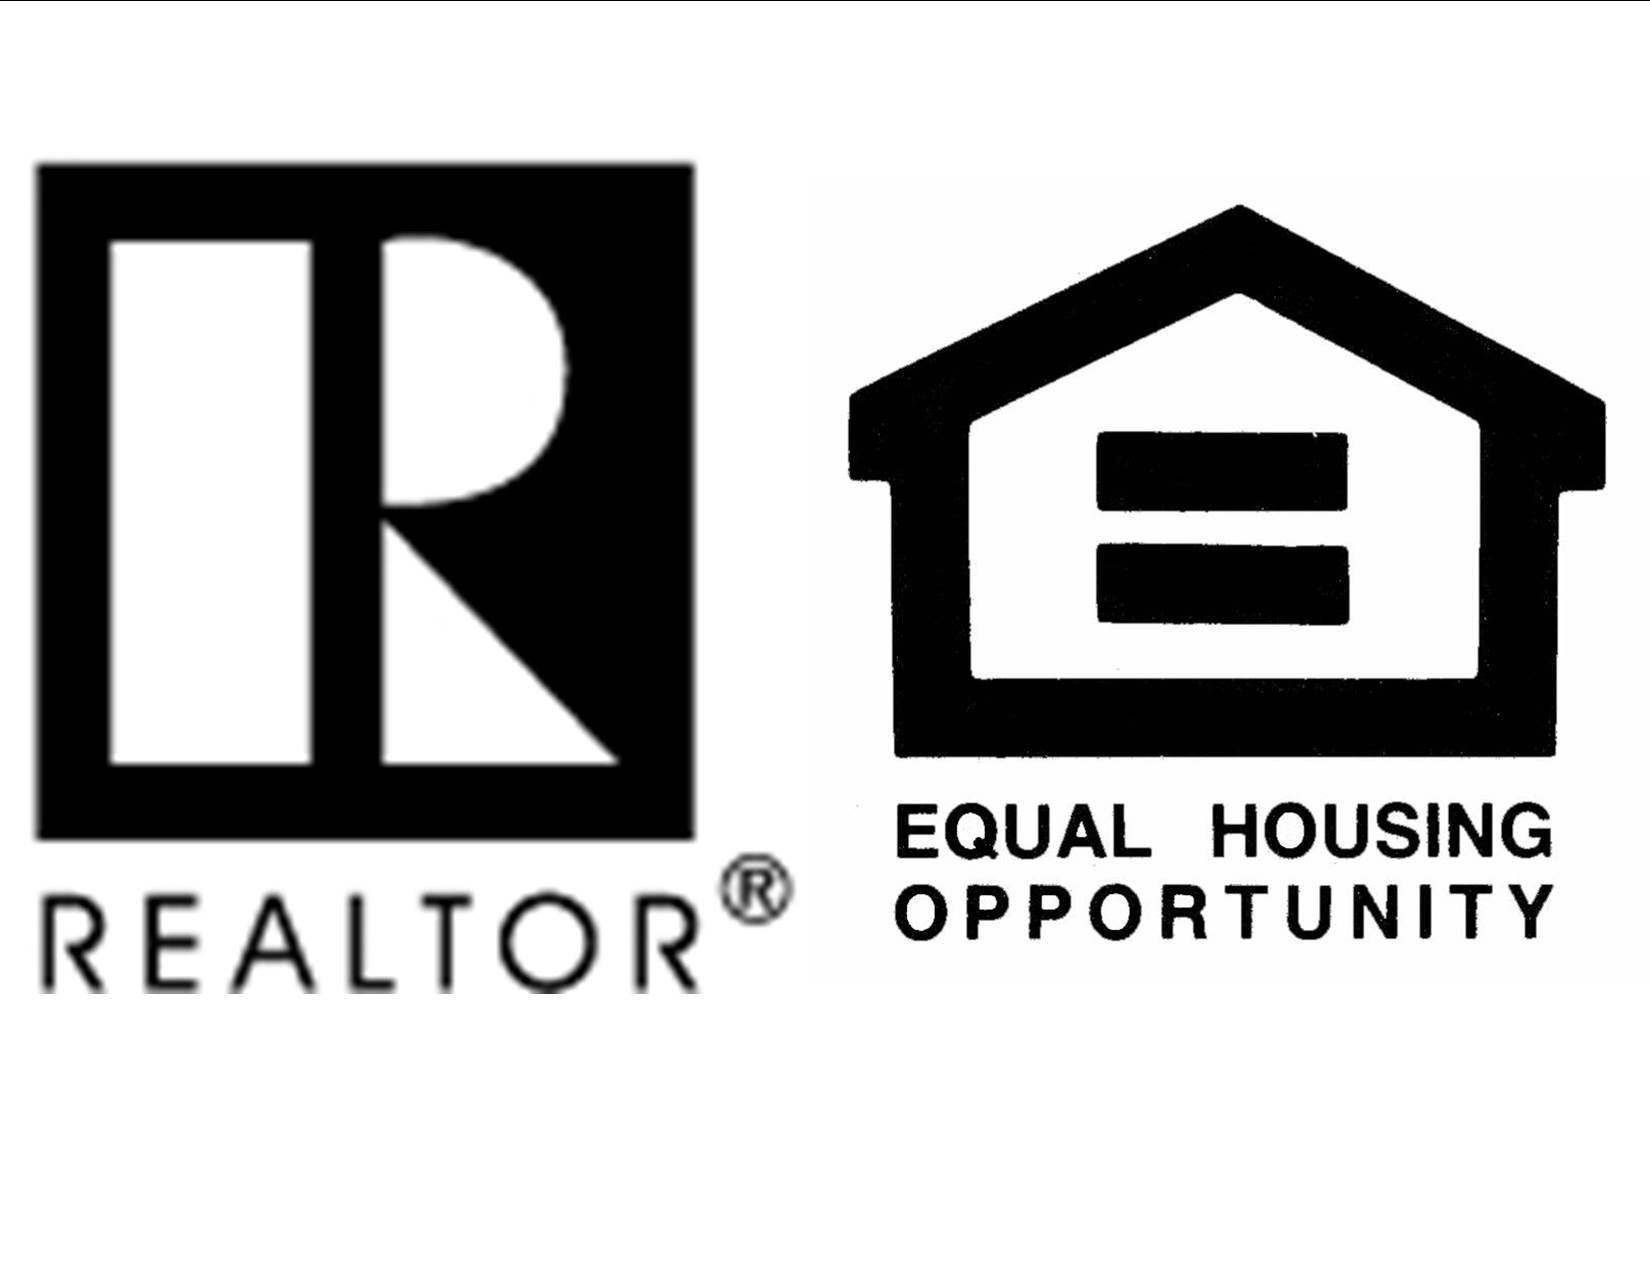 Download Equal Opportunity Housing Logo Png.